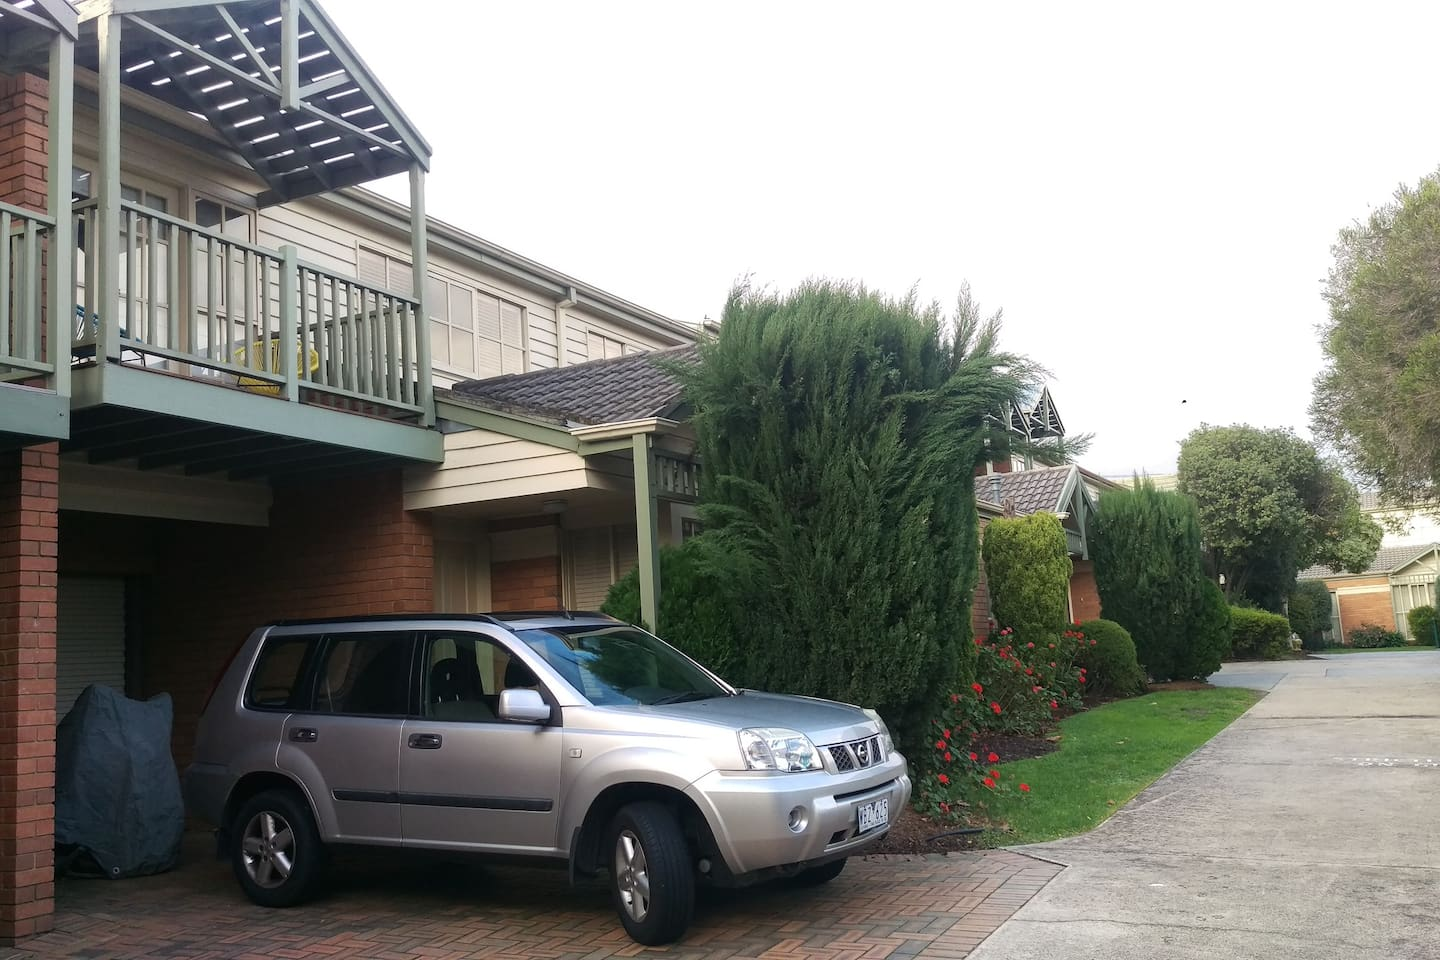 House Frontage, this is off street, in a quiet, leafy suburb